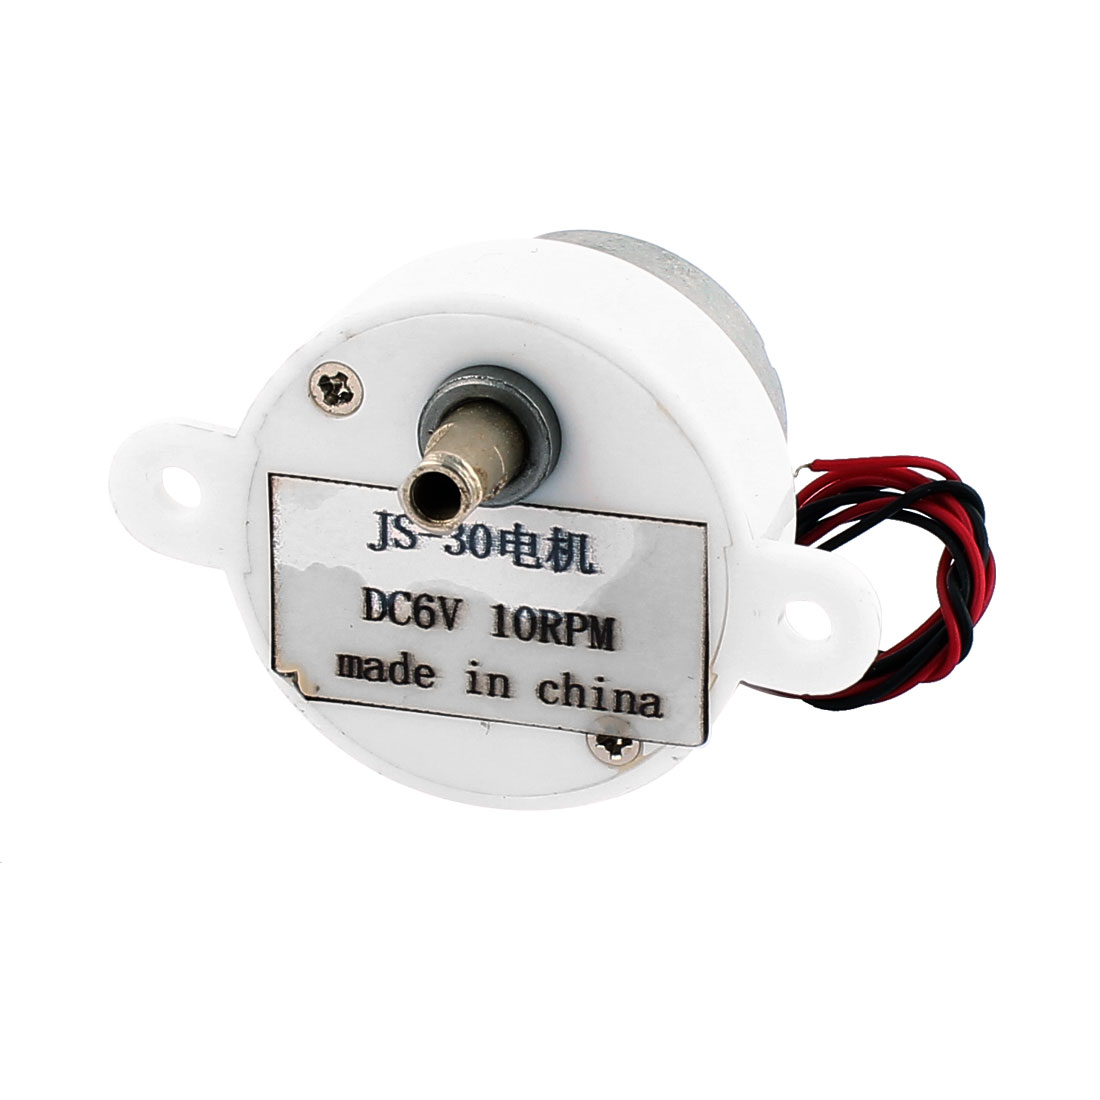 2 Wires Connecting Micro Motor JS-30 DC 6V 10RPM for Air Condition Water Heater